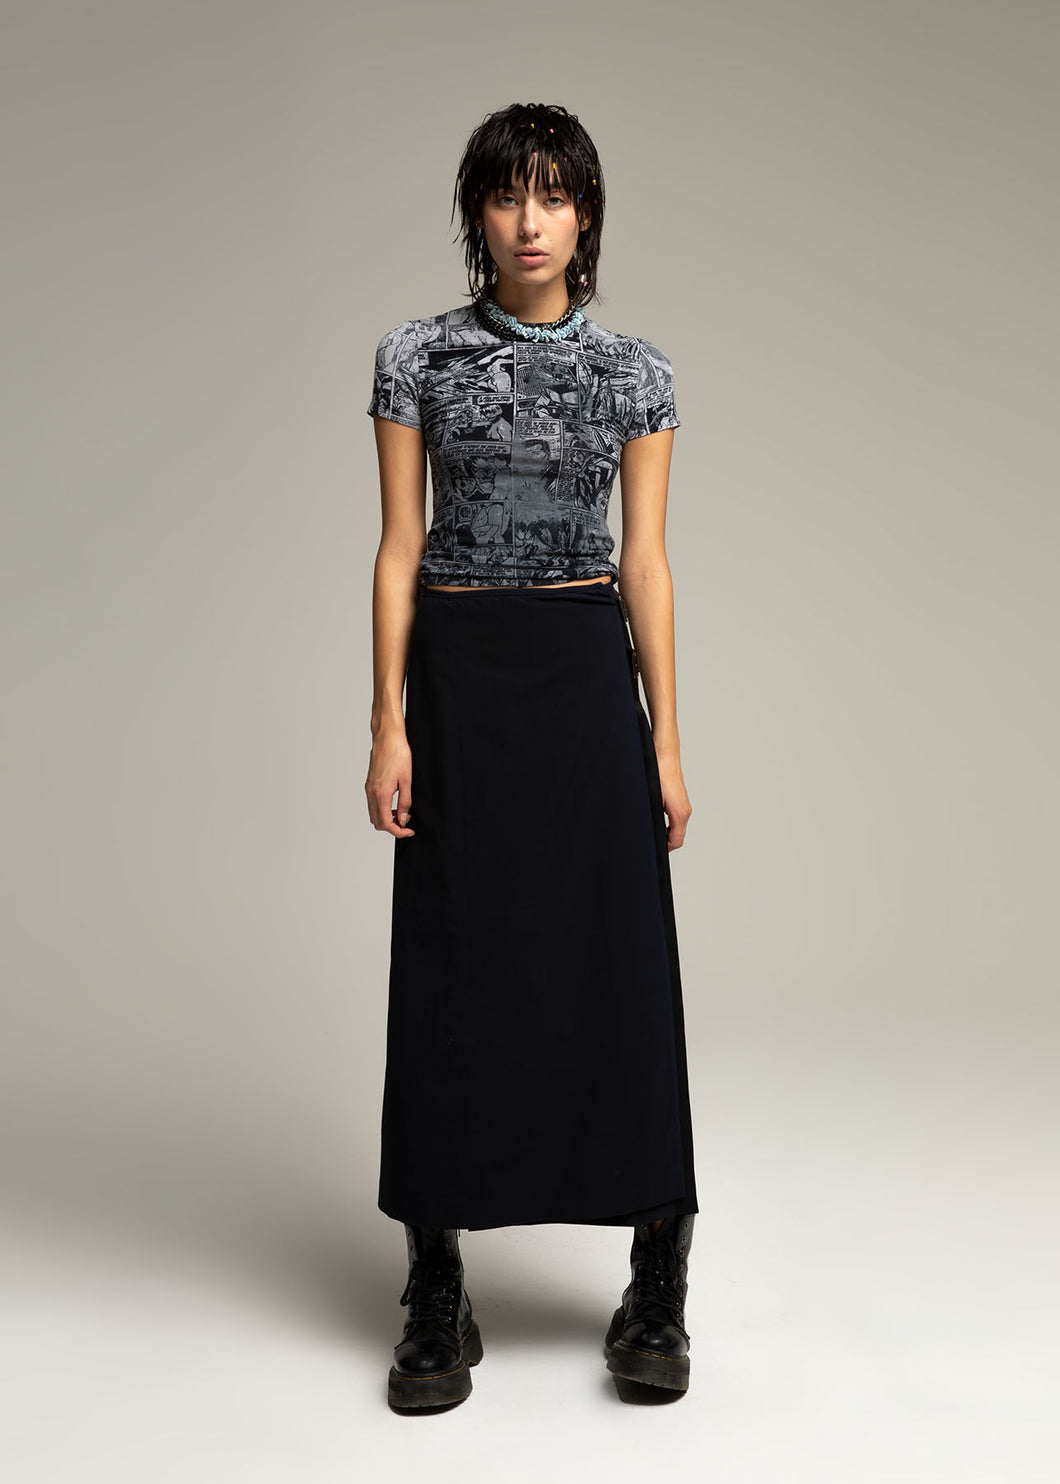 PRADA straps long skirt